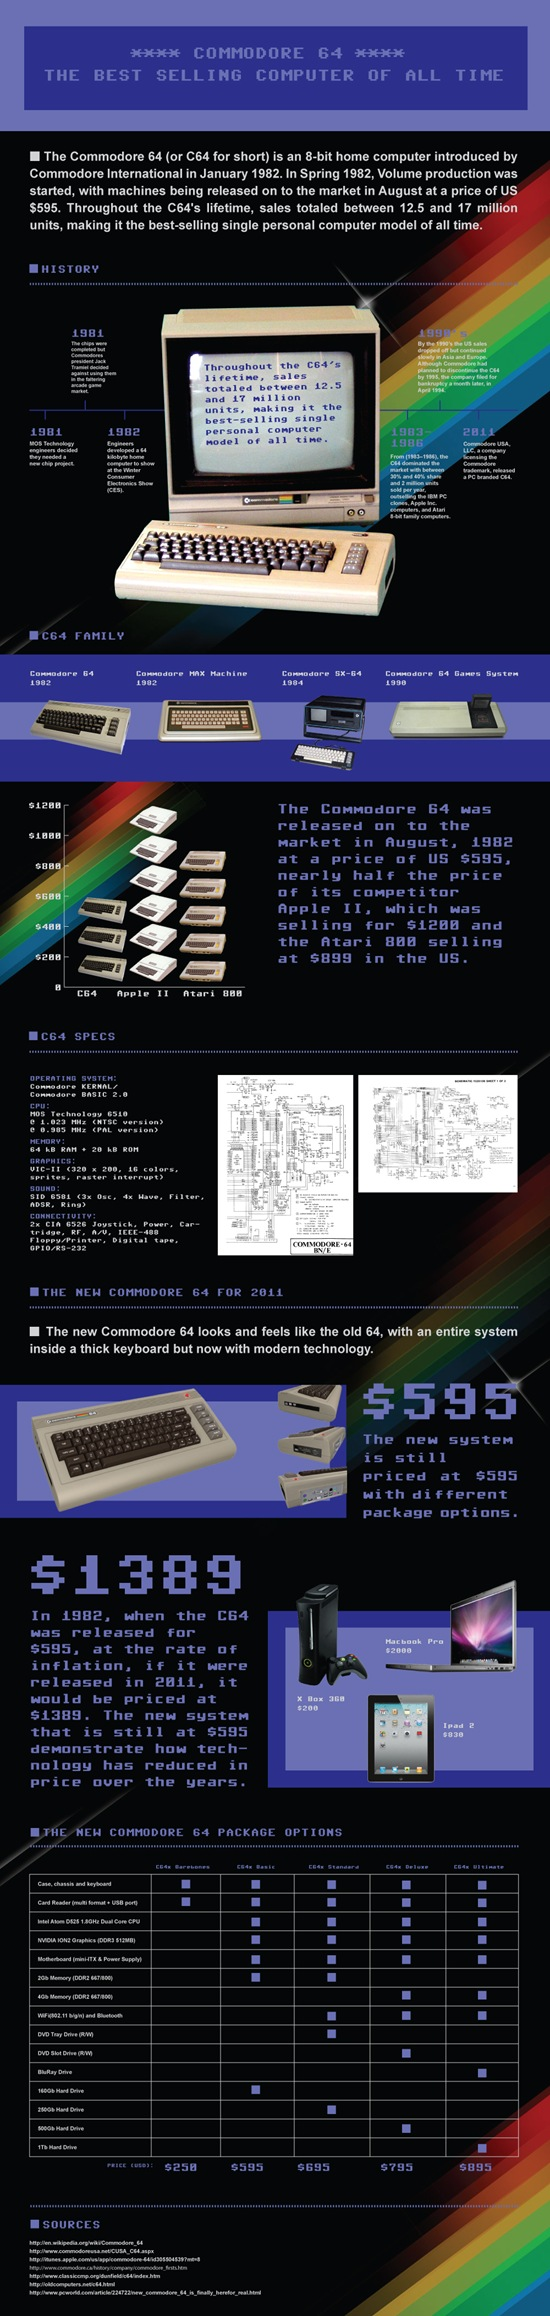 infographic commodre 64 best selling computer of all time best selling computer